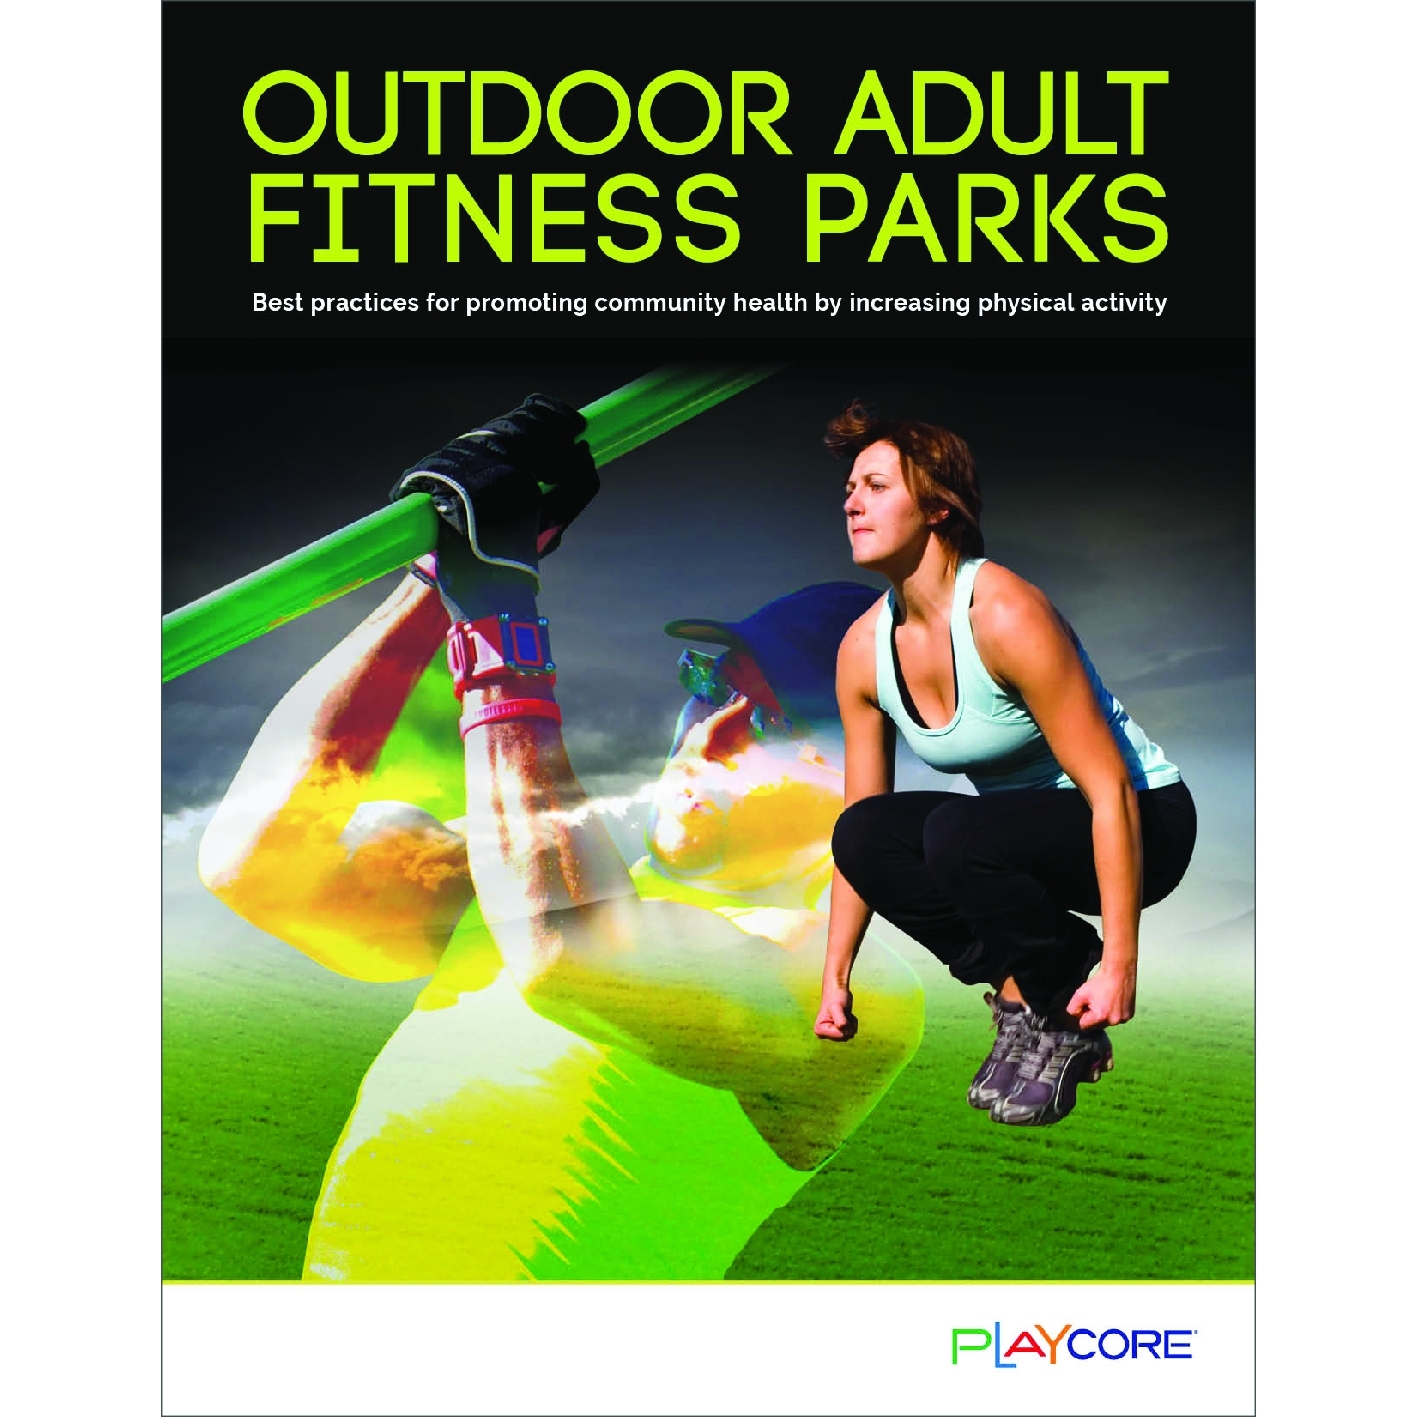 Outdoor-Adult-Fitness-Parks-Cover_Square.jpg#asset:14054